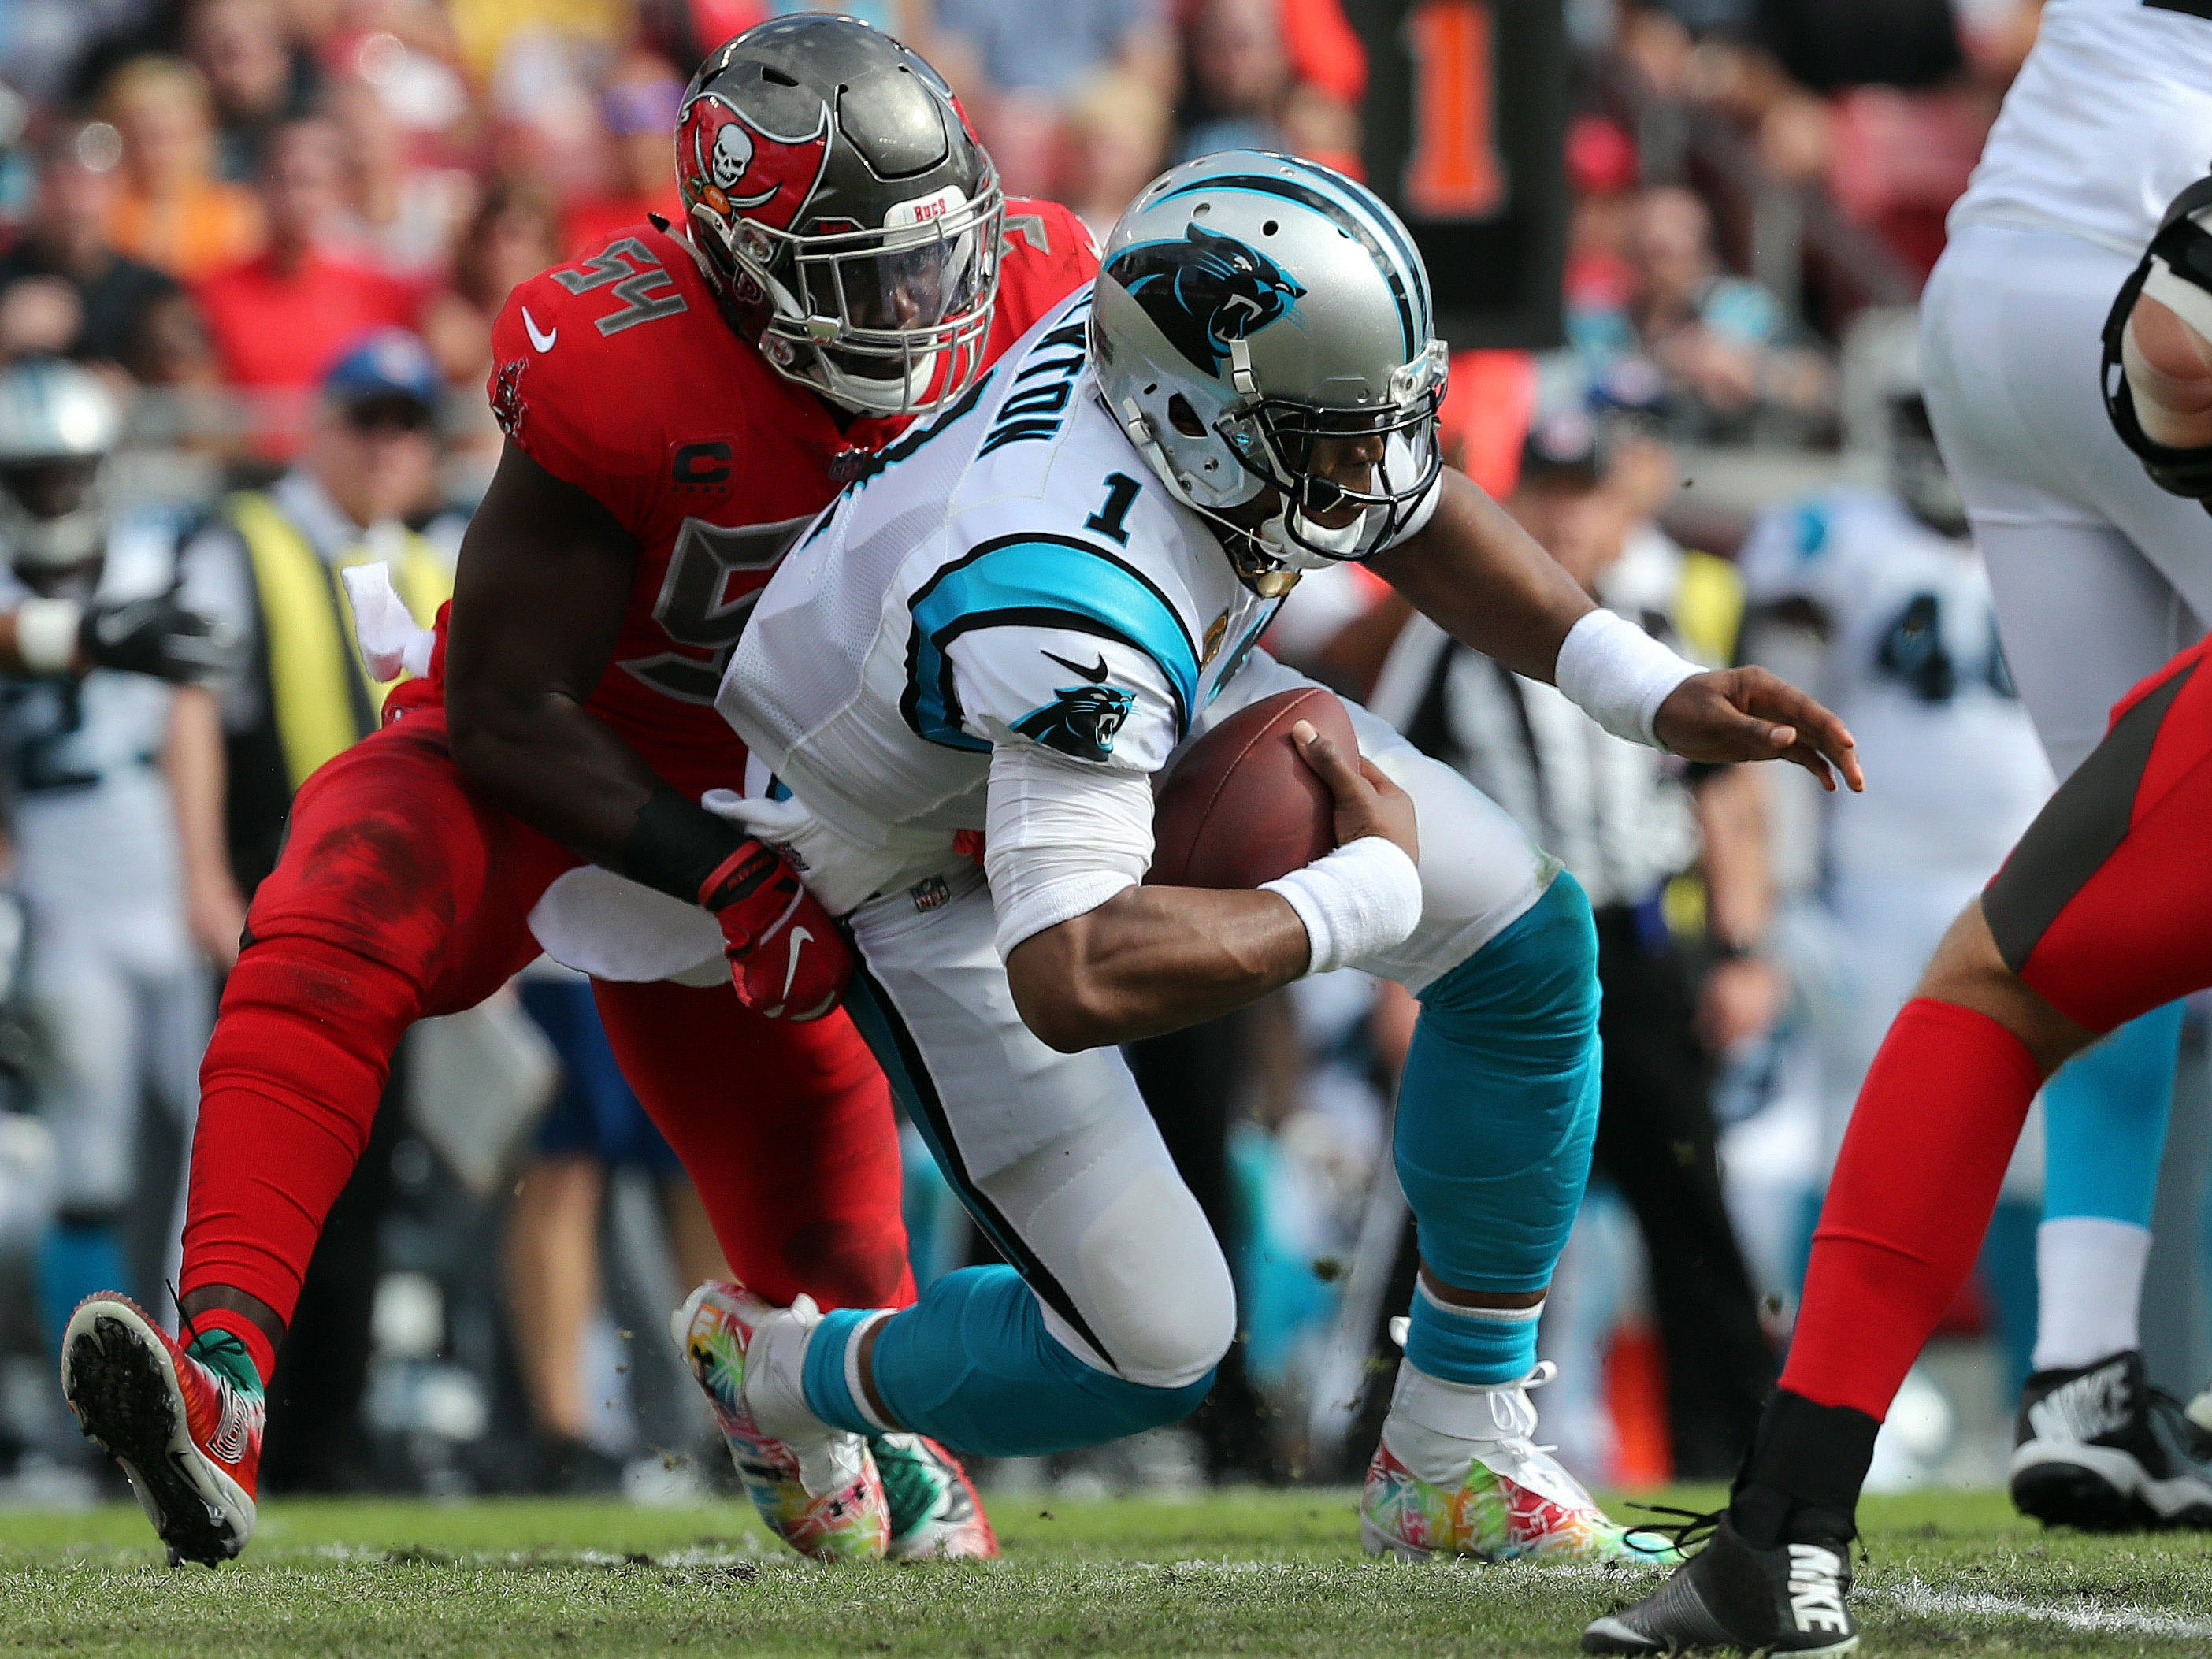 Tampa Bay Buccaneers outside linebacker Lavonte David (54) sacks Carolina Panthers quarterback Cam Newton (1) during the first half at Raymond James Stadium.